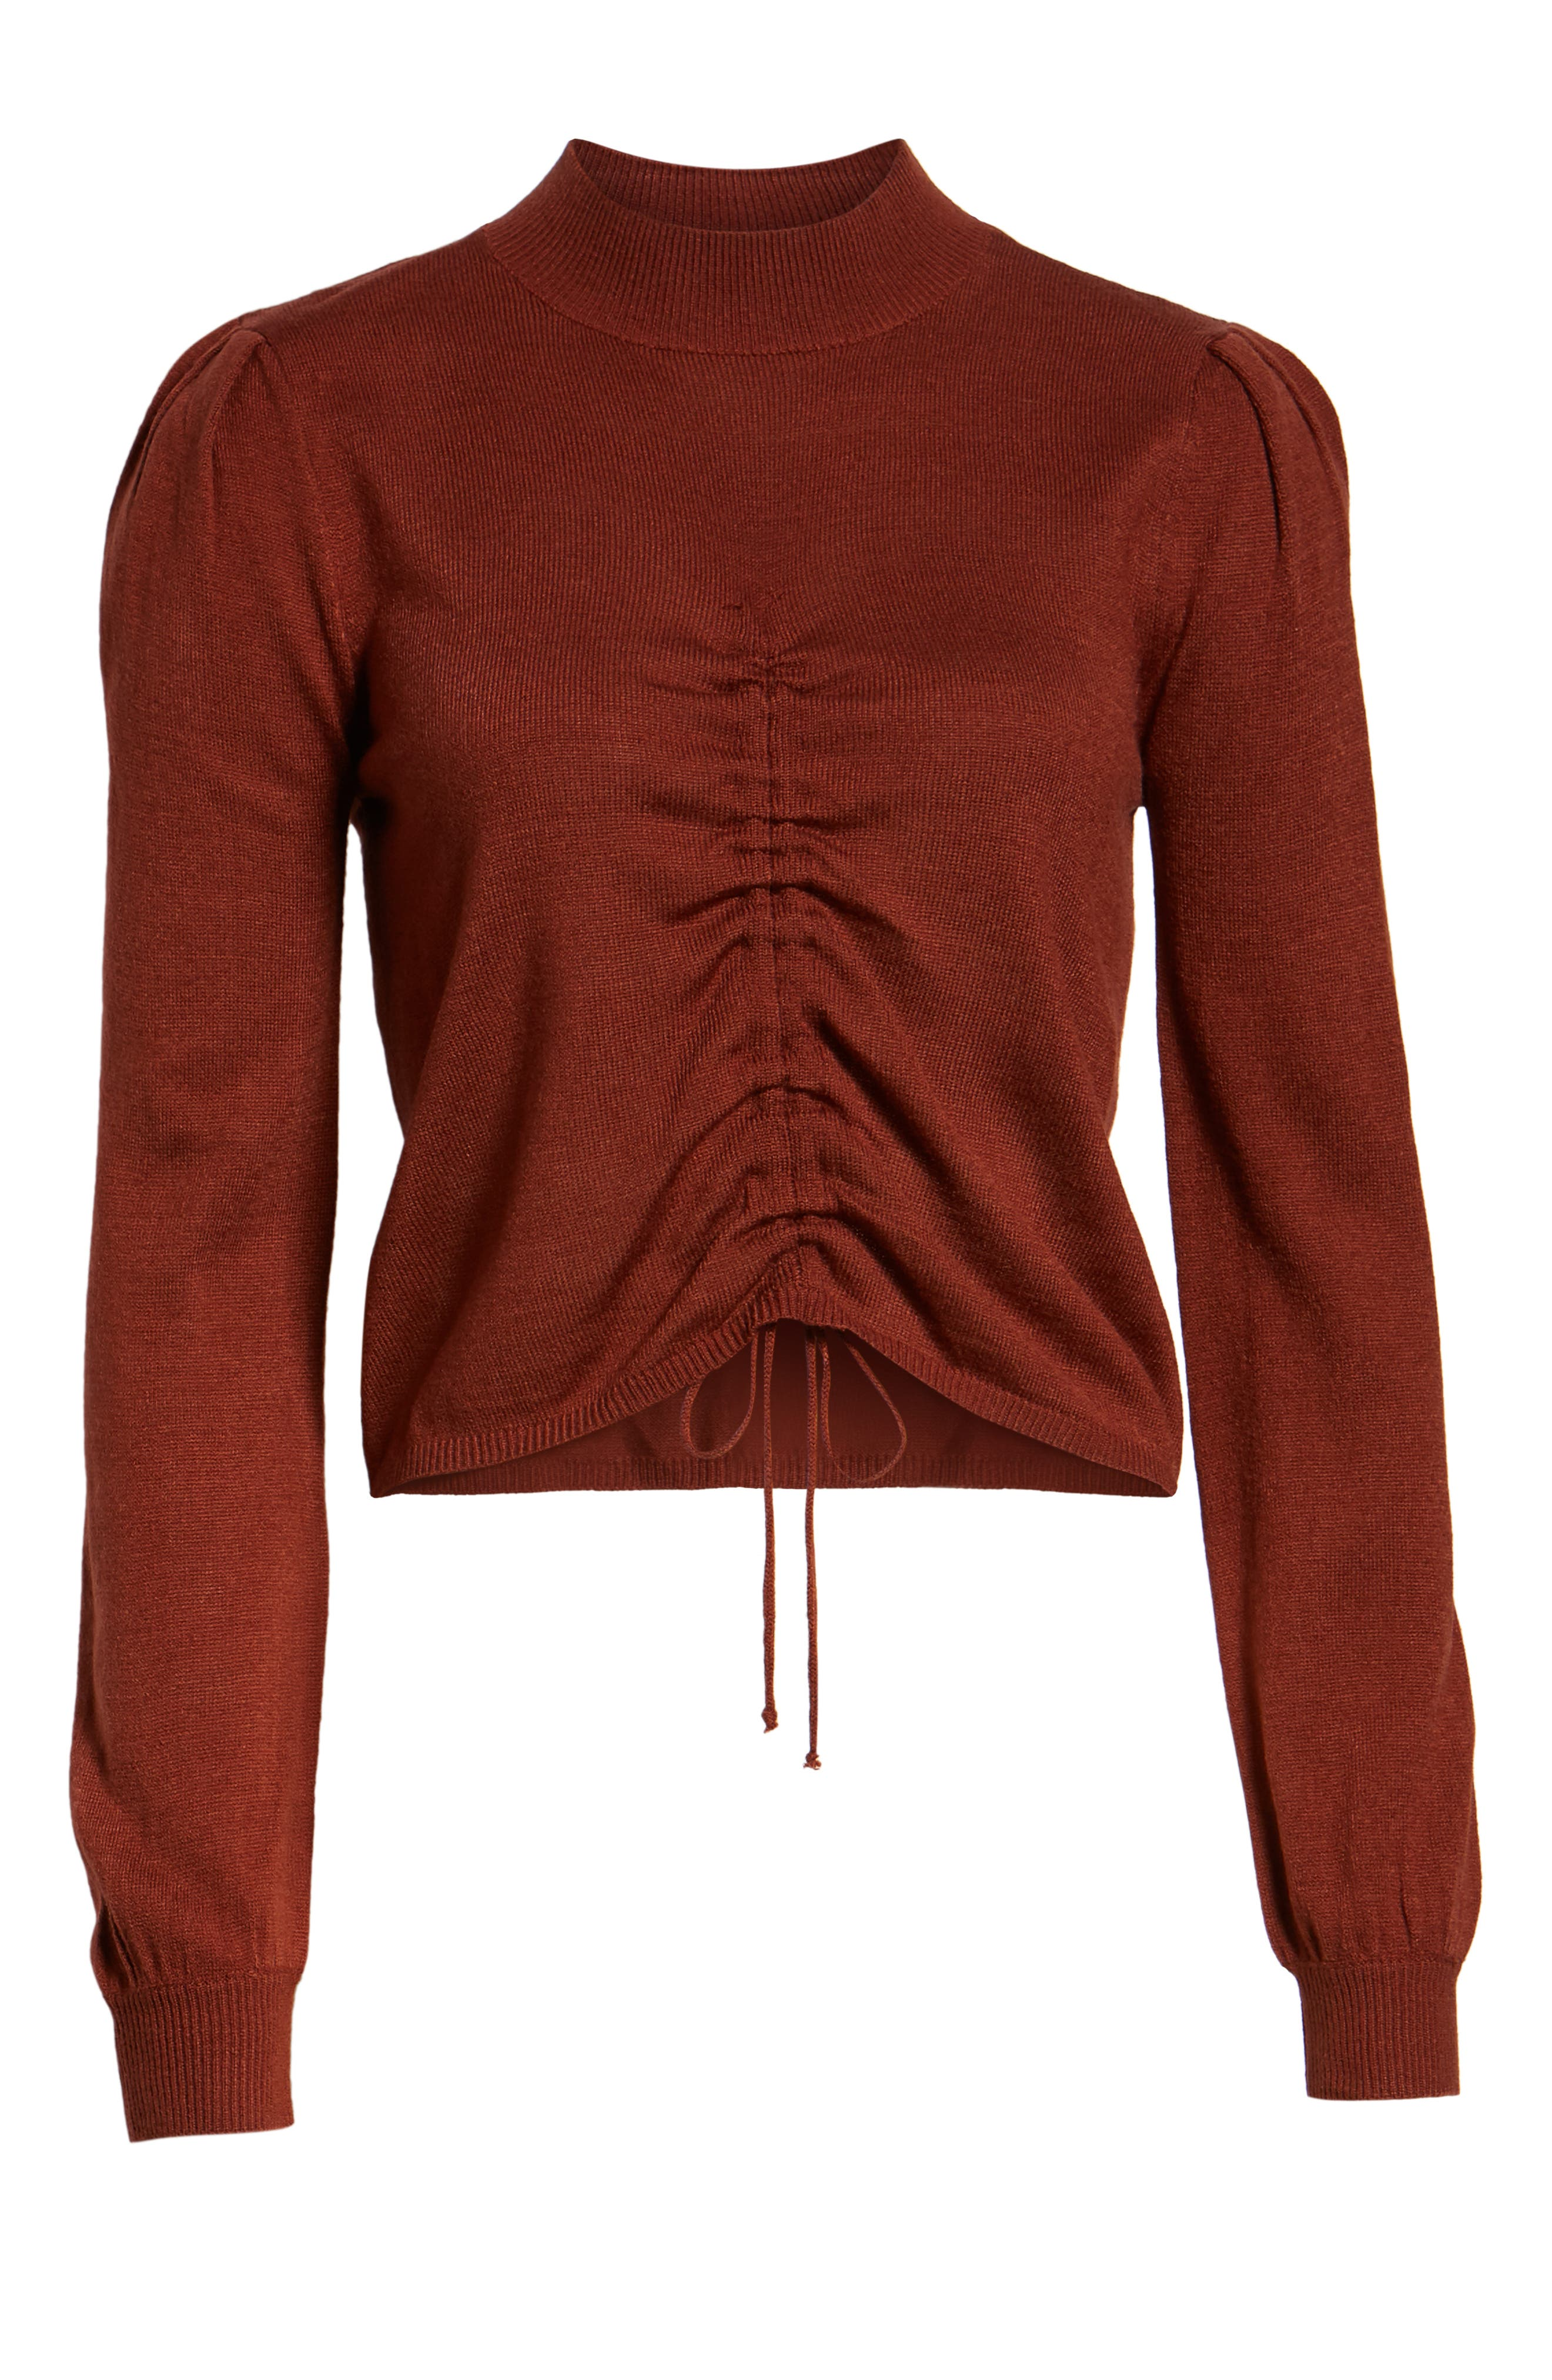 Chriselle Lim Madison Ruched Sweater,                             Alternate thumbnail 7, color,                             RUST